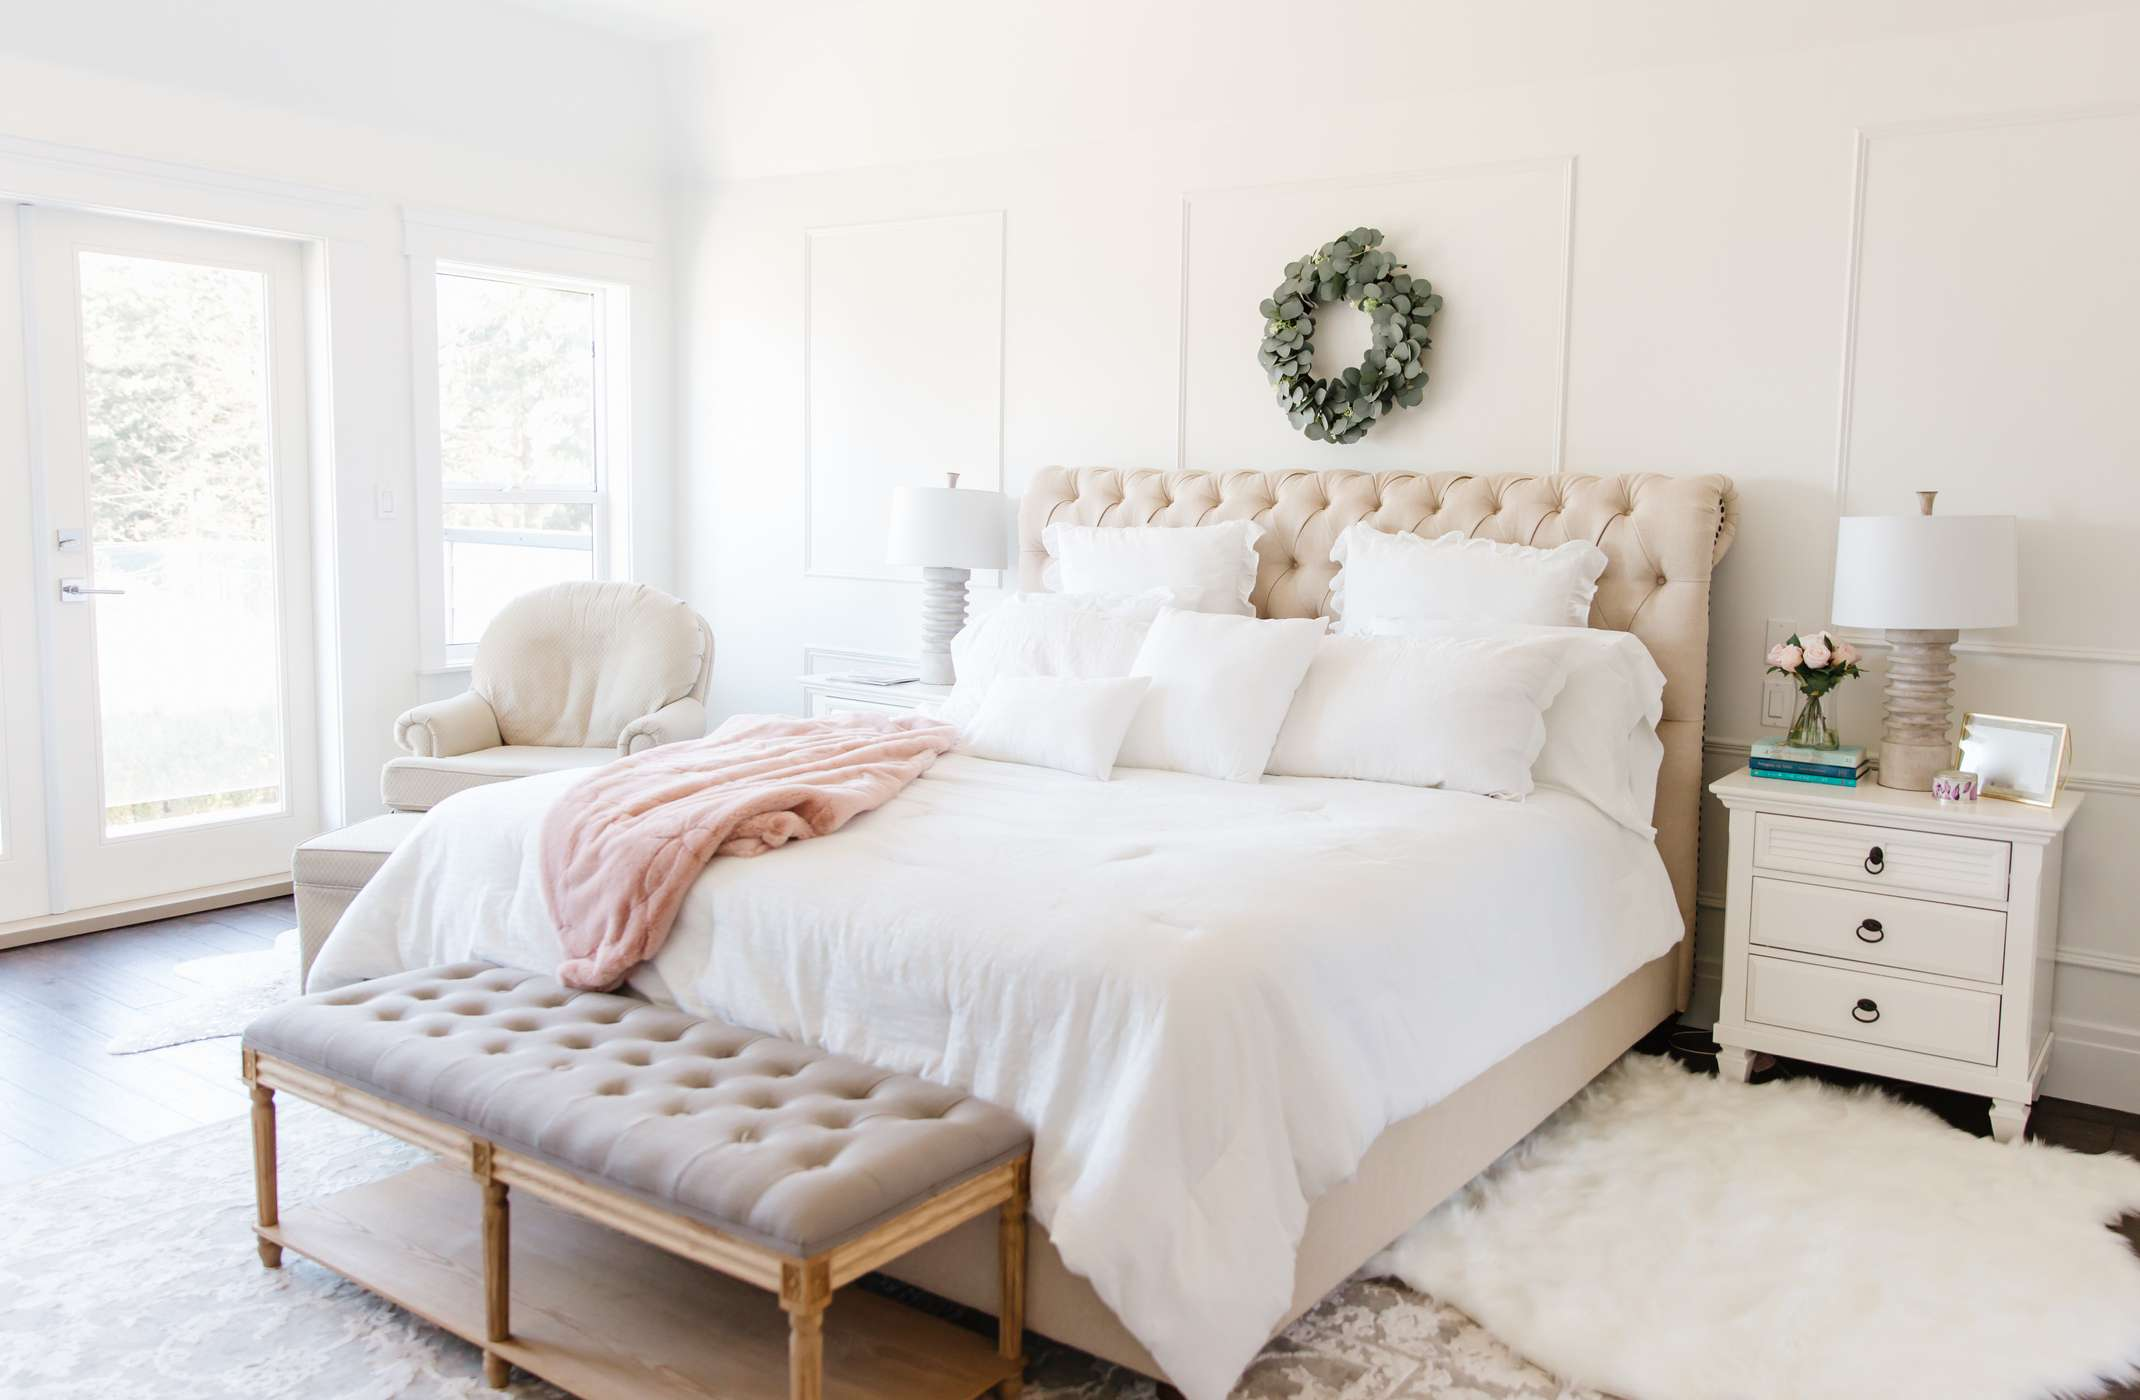 A bedroom with a sheepskin rug.